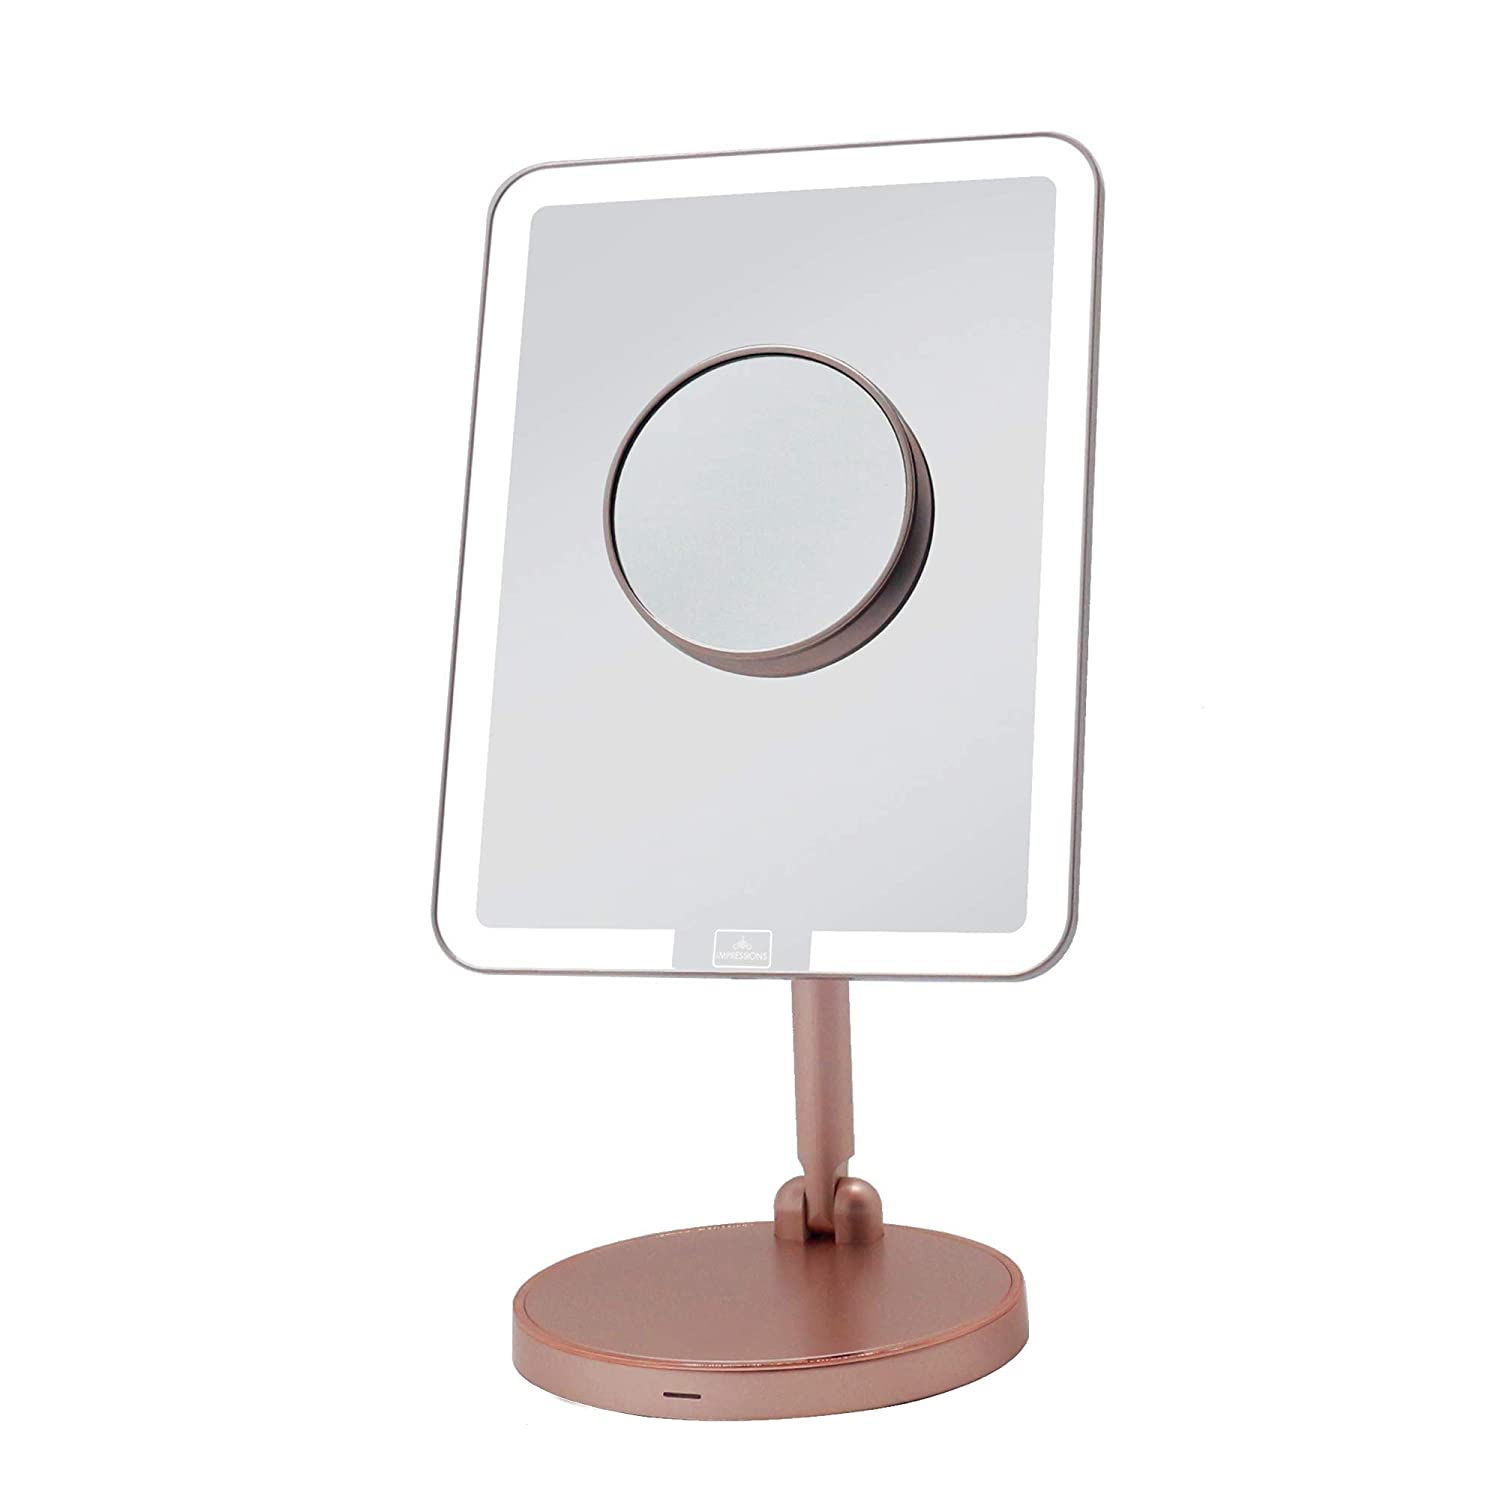 IMPRESSIONS Royale Petit Makeup Vanity Mirror with Adjustable LED Light | Rose Gold Beauty Mirror with 360-Degree Turning Standing Base & Wireless Charging Pad